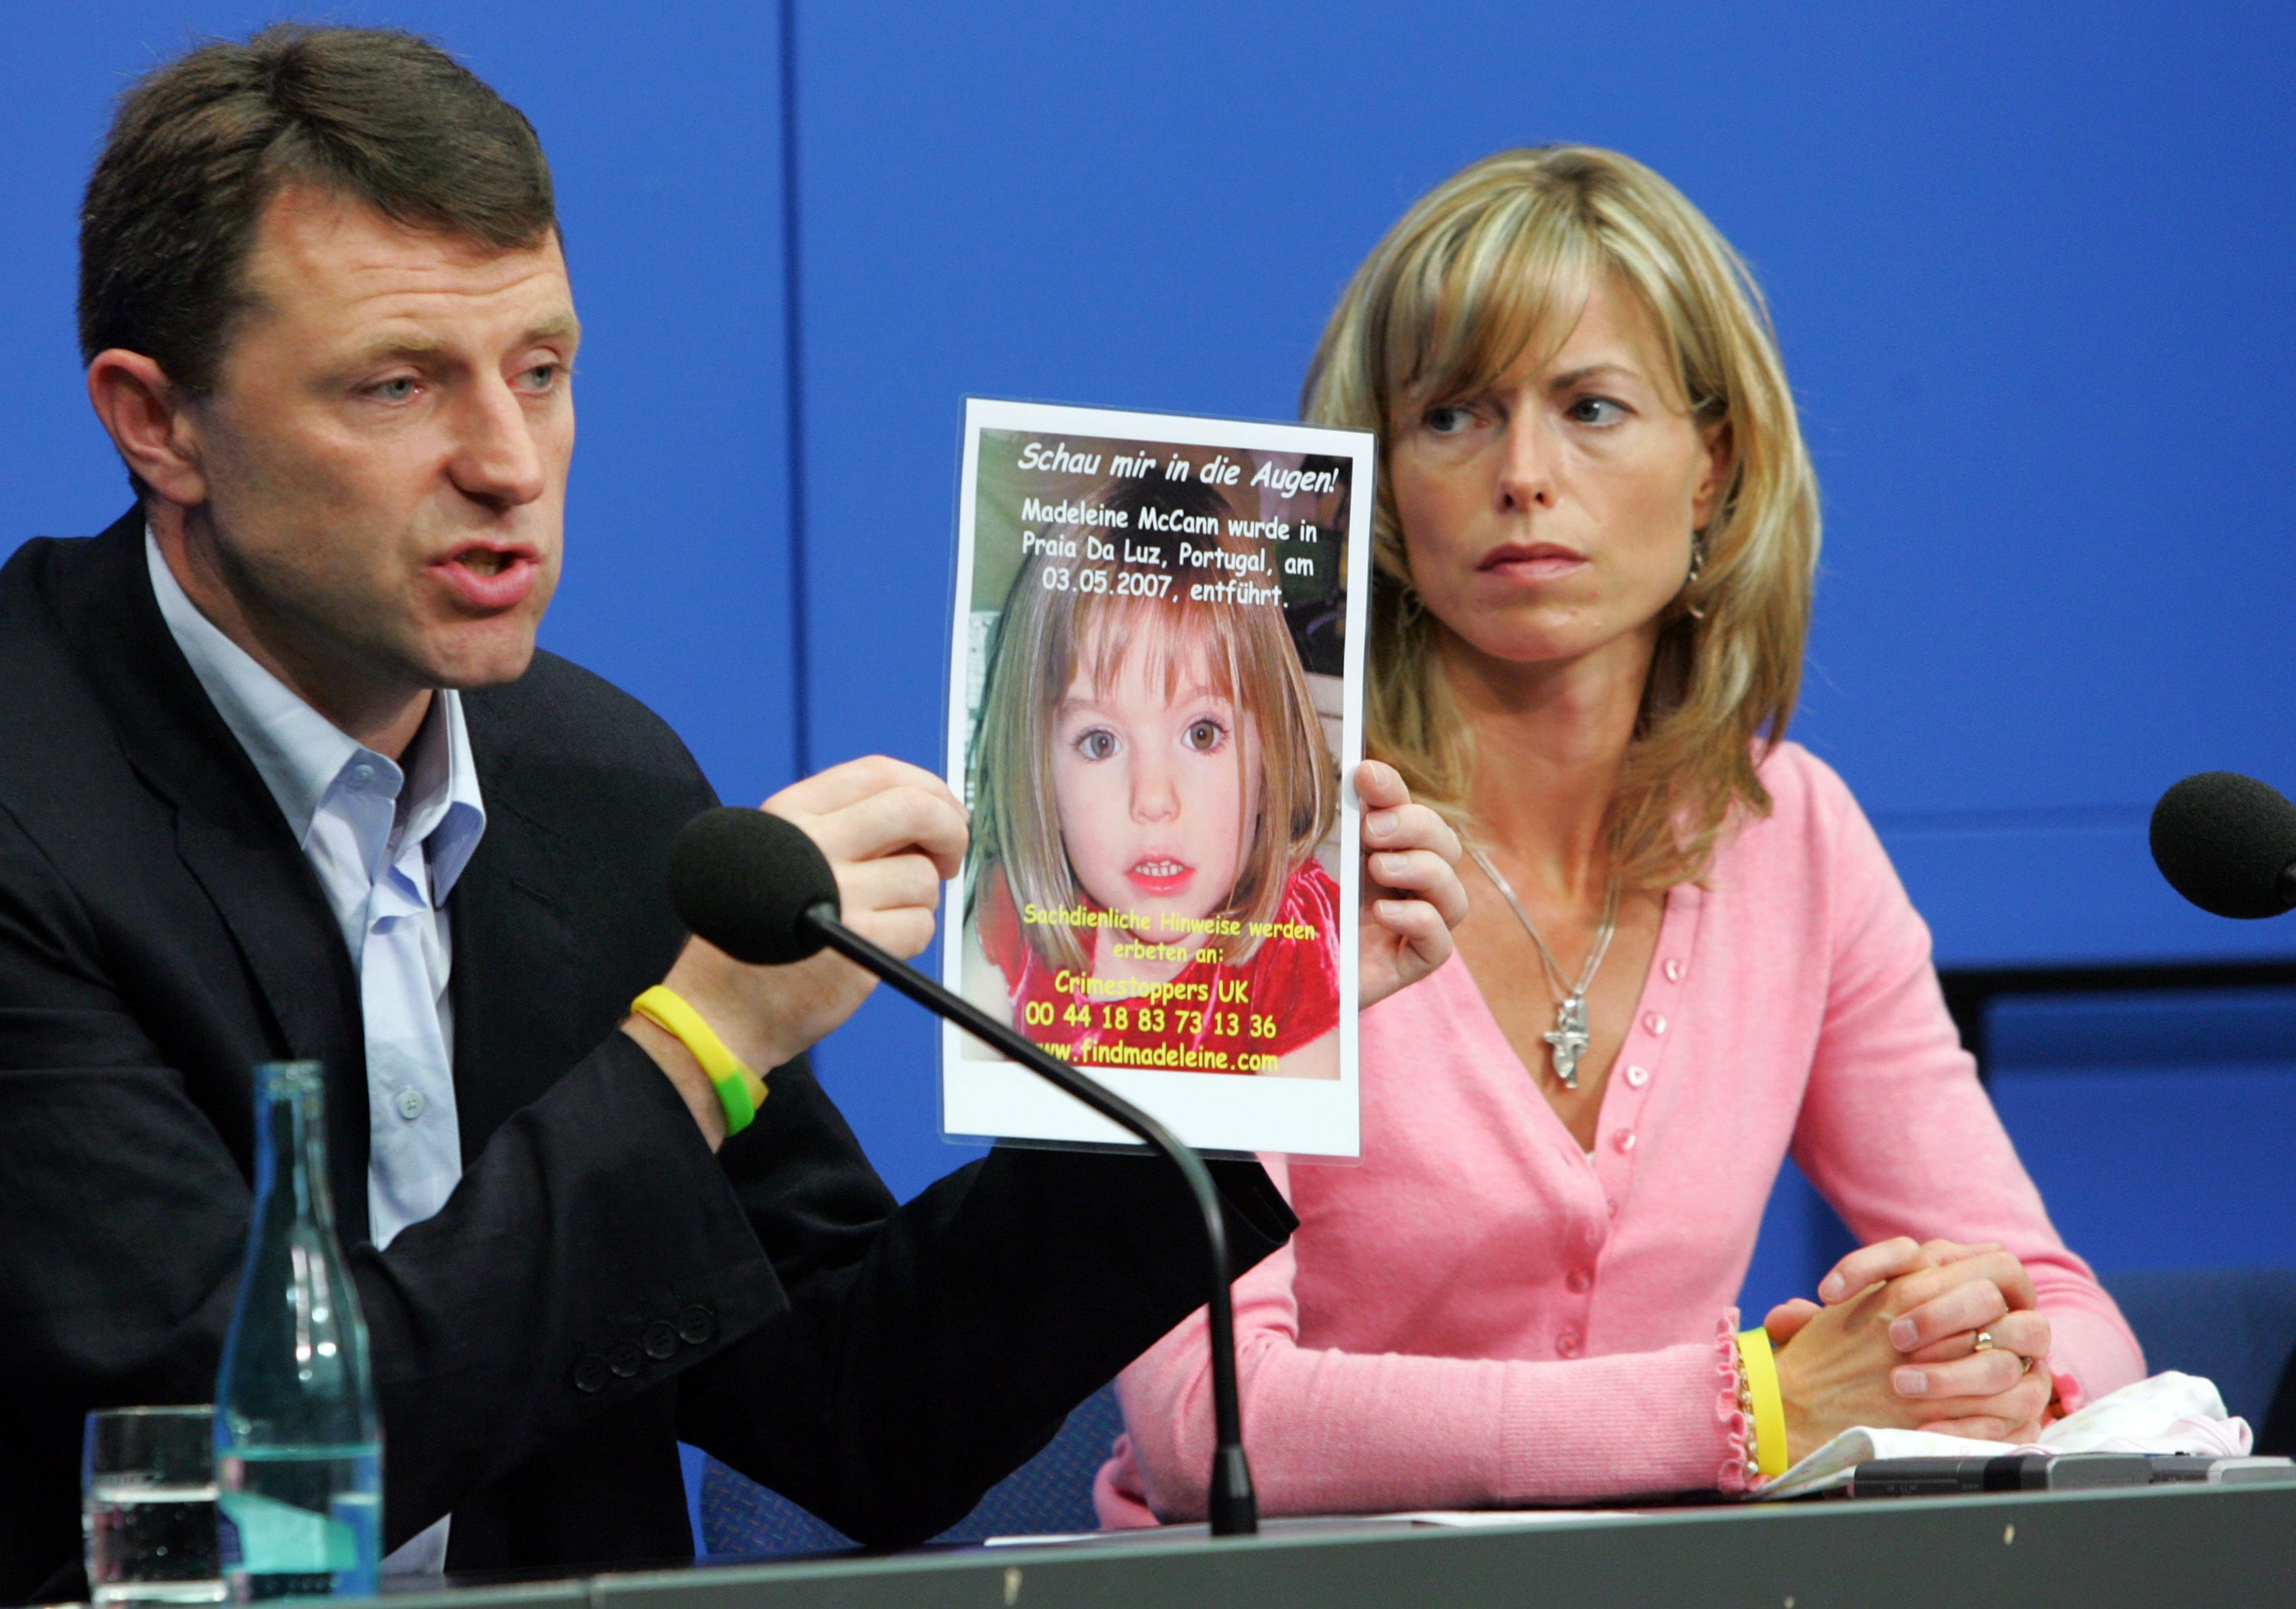 wsi imageoptim GettyImages 74414427 Sick Maddie McCann Tour Takes Customers To Locations Linked To Her Disappearance